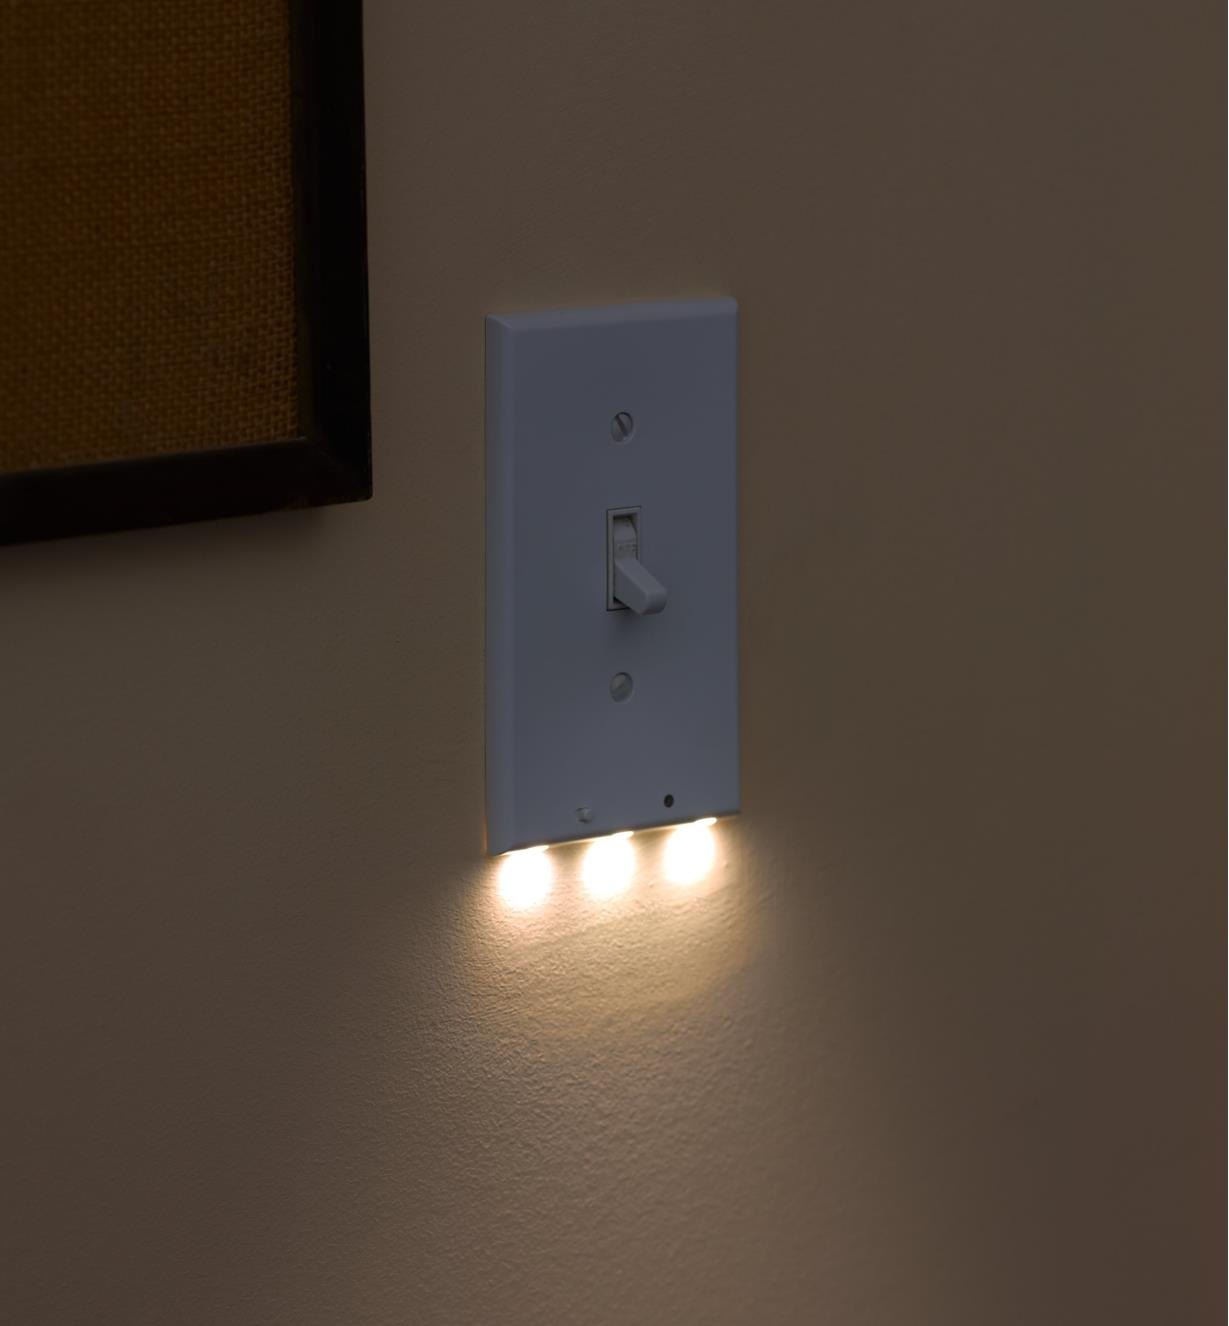 An LED toggle switch cover plate mounted on a wall, giving gentle, diffused illumination at night.